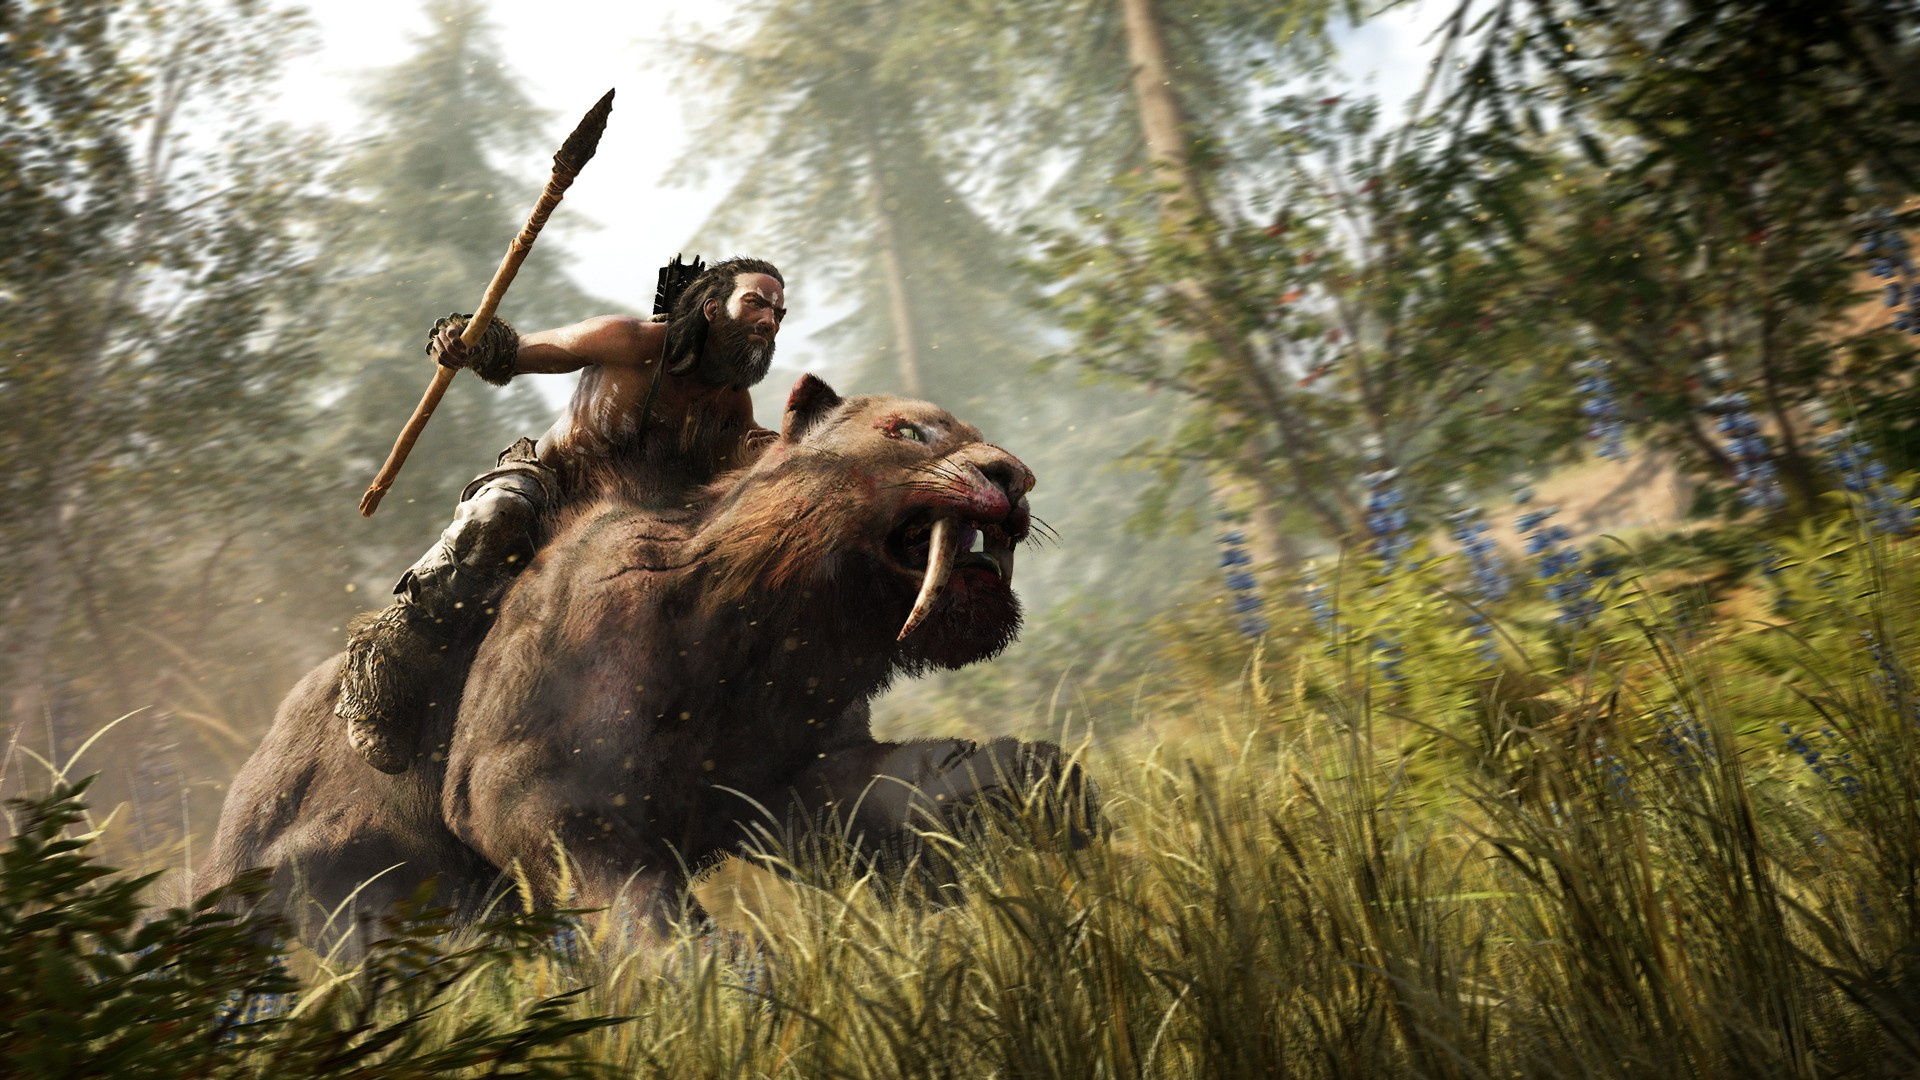 Here S What You Need To Know About Far Cry Primal Push Square